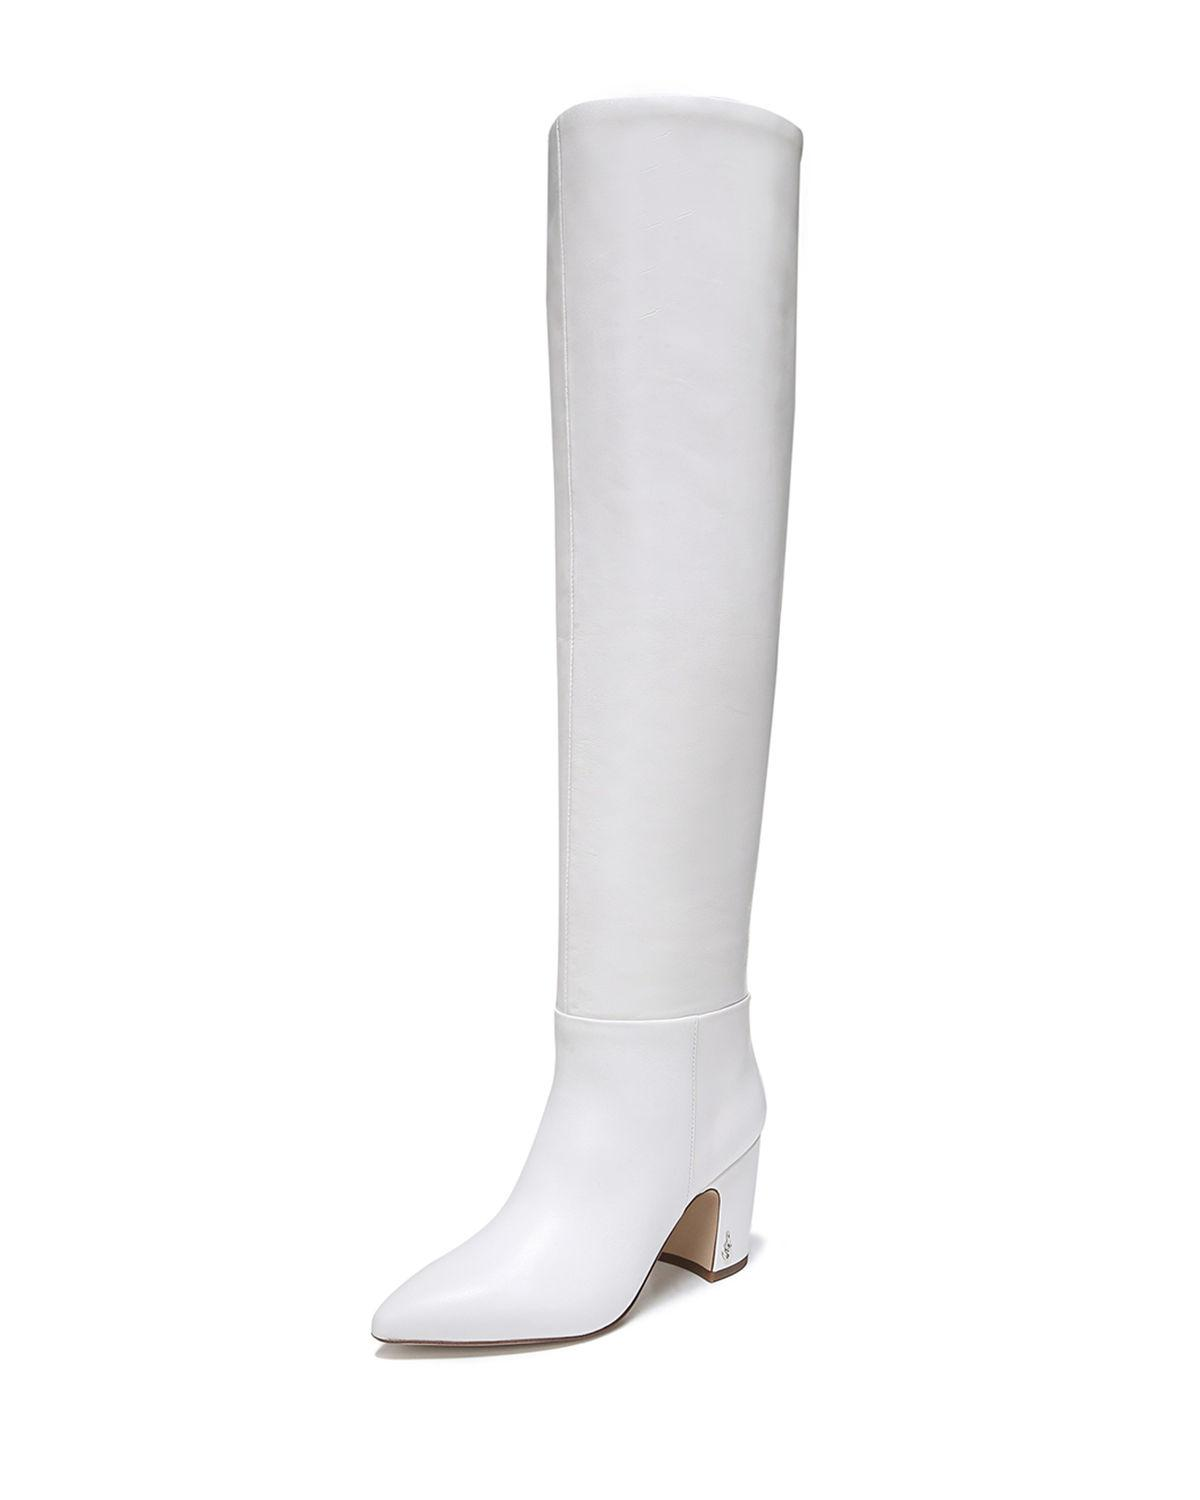 b6d885cda4ad8a Lyst - Sam Edelman Hutton Leather Over-the-knee Boots in White